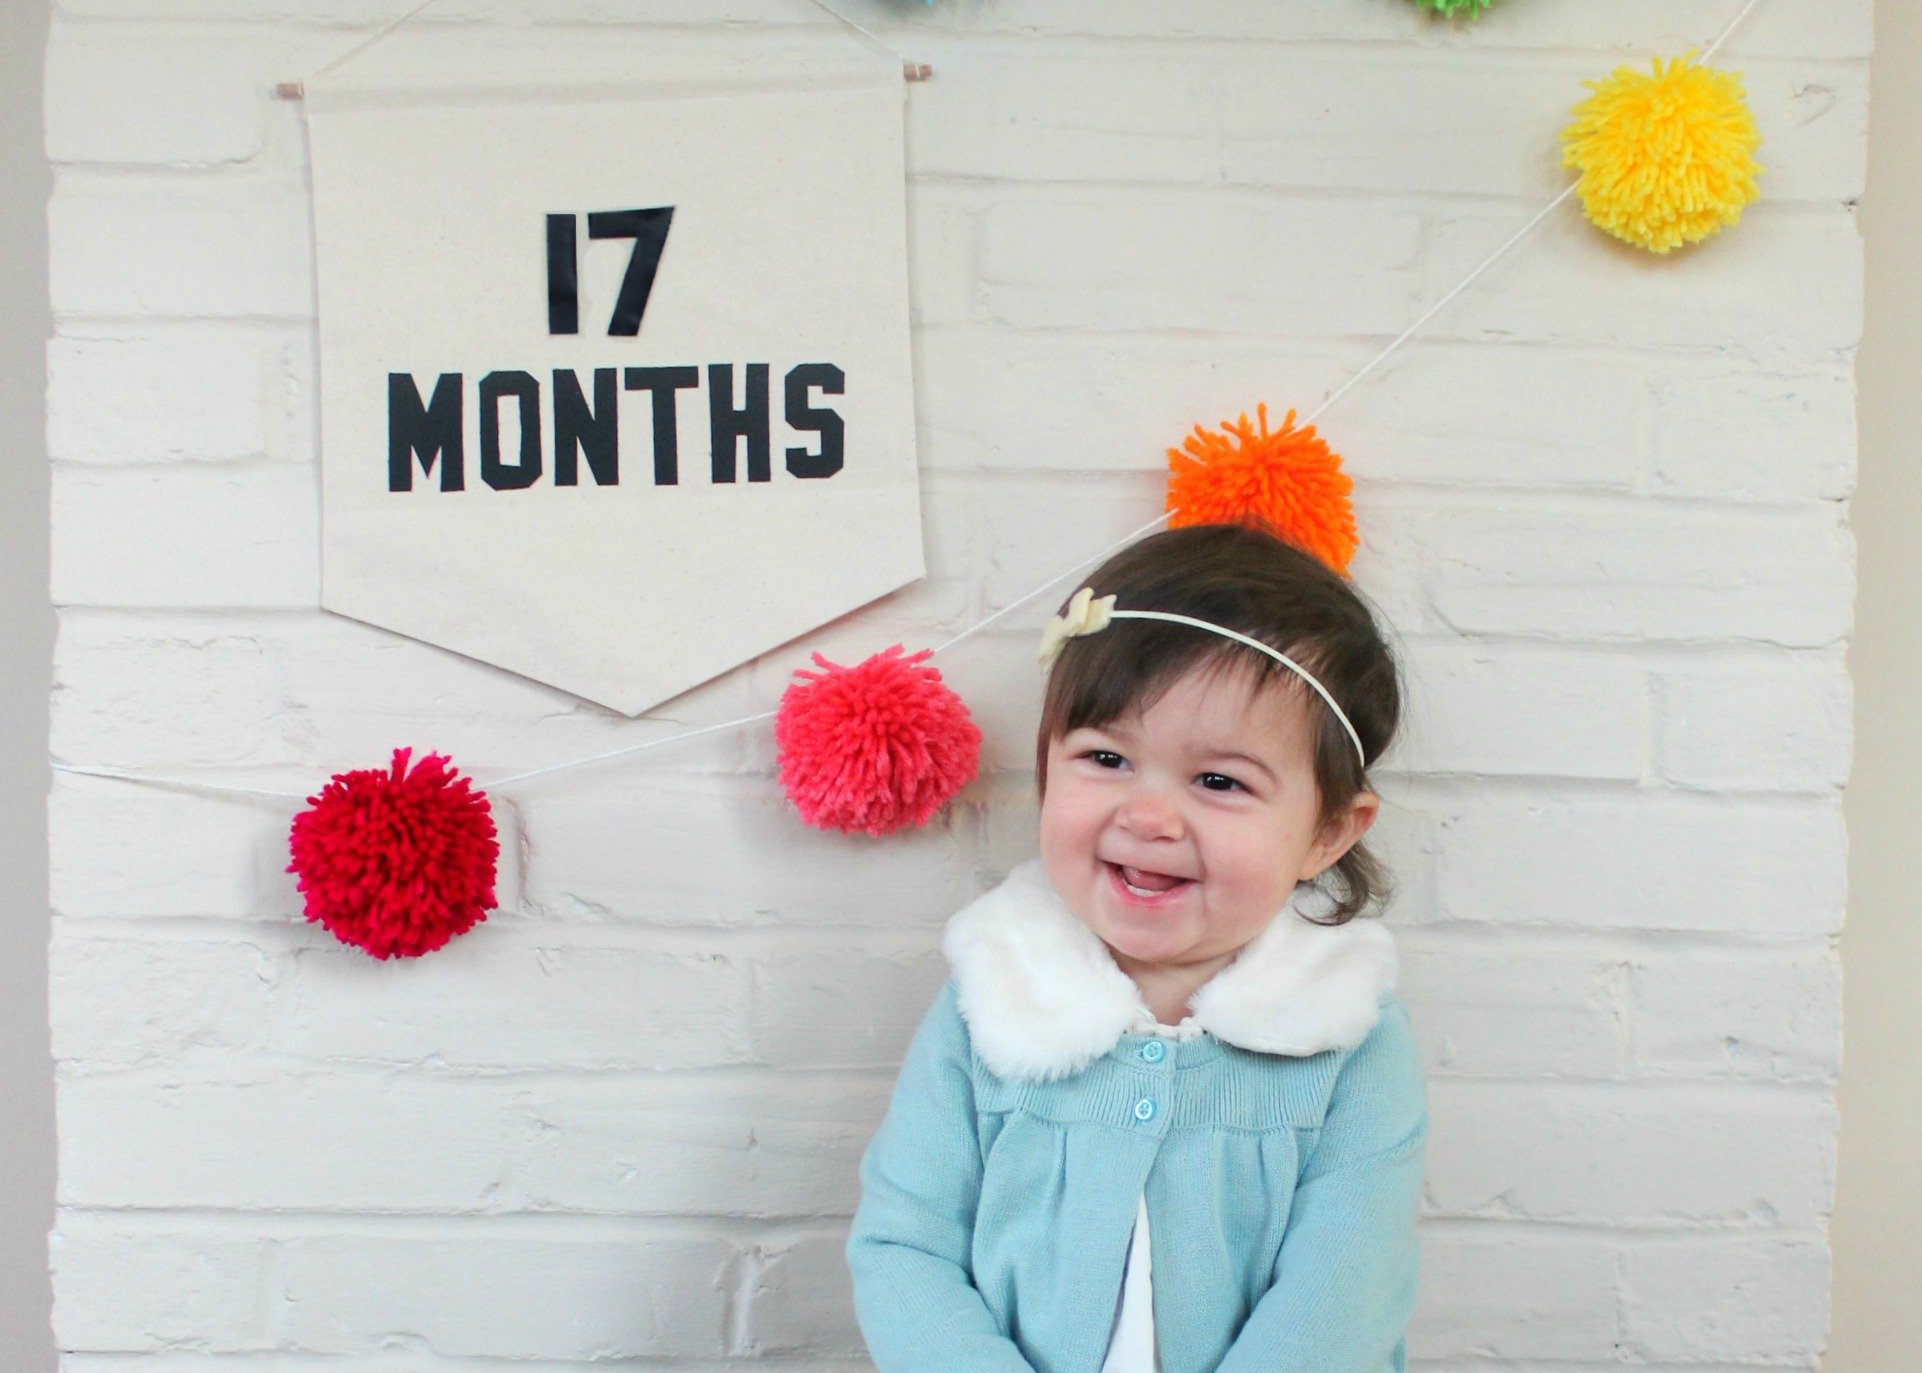 Catching Up With Carmendy {17 Months}